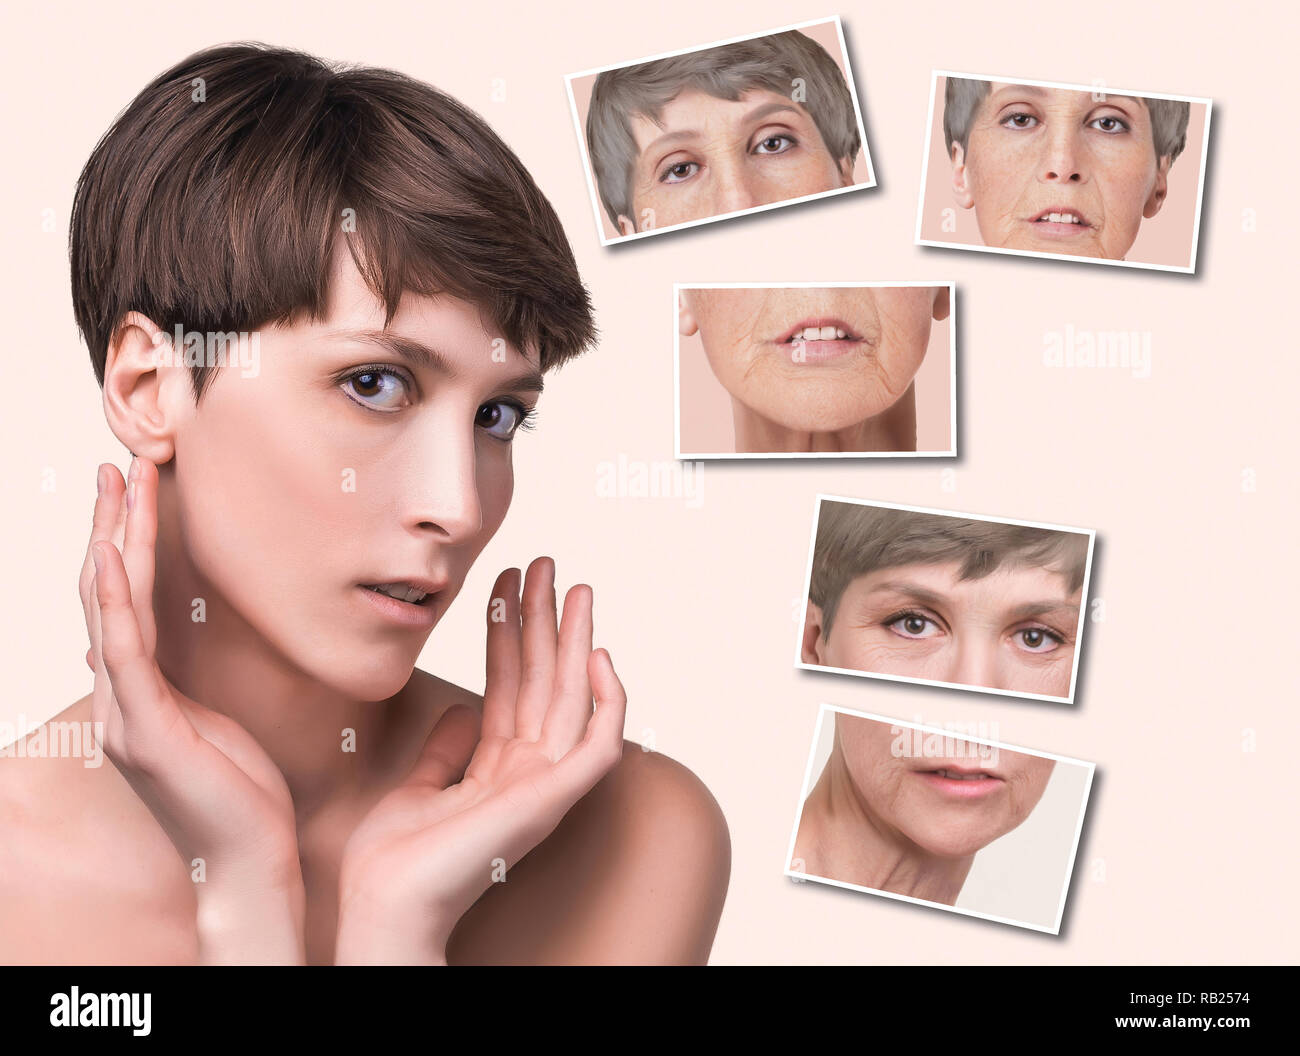 Anti-aging, beauty treatment, aging and youth, lifting, skincare, plastic surgery concept. - Stock Image